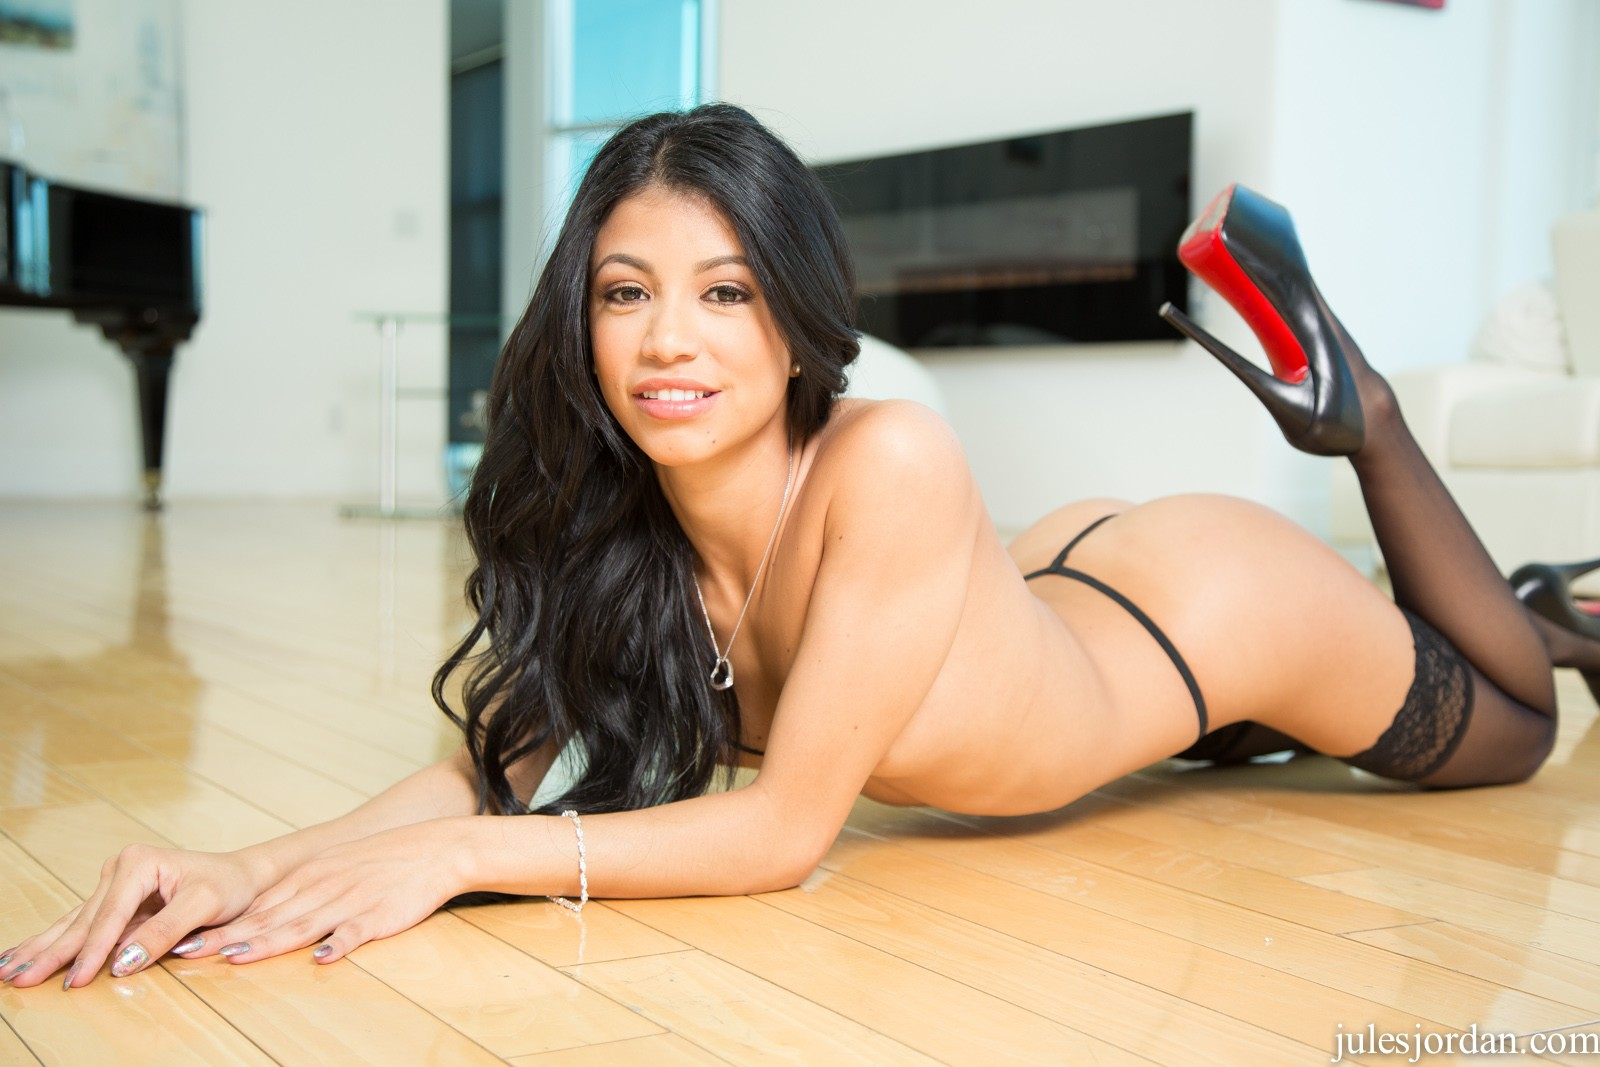 Veronica Rodriguez Young Petite Latina Doll Featuring Veronica Rodriguez